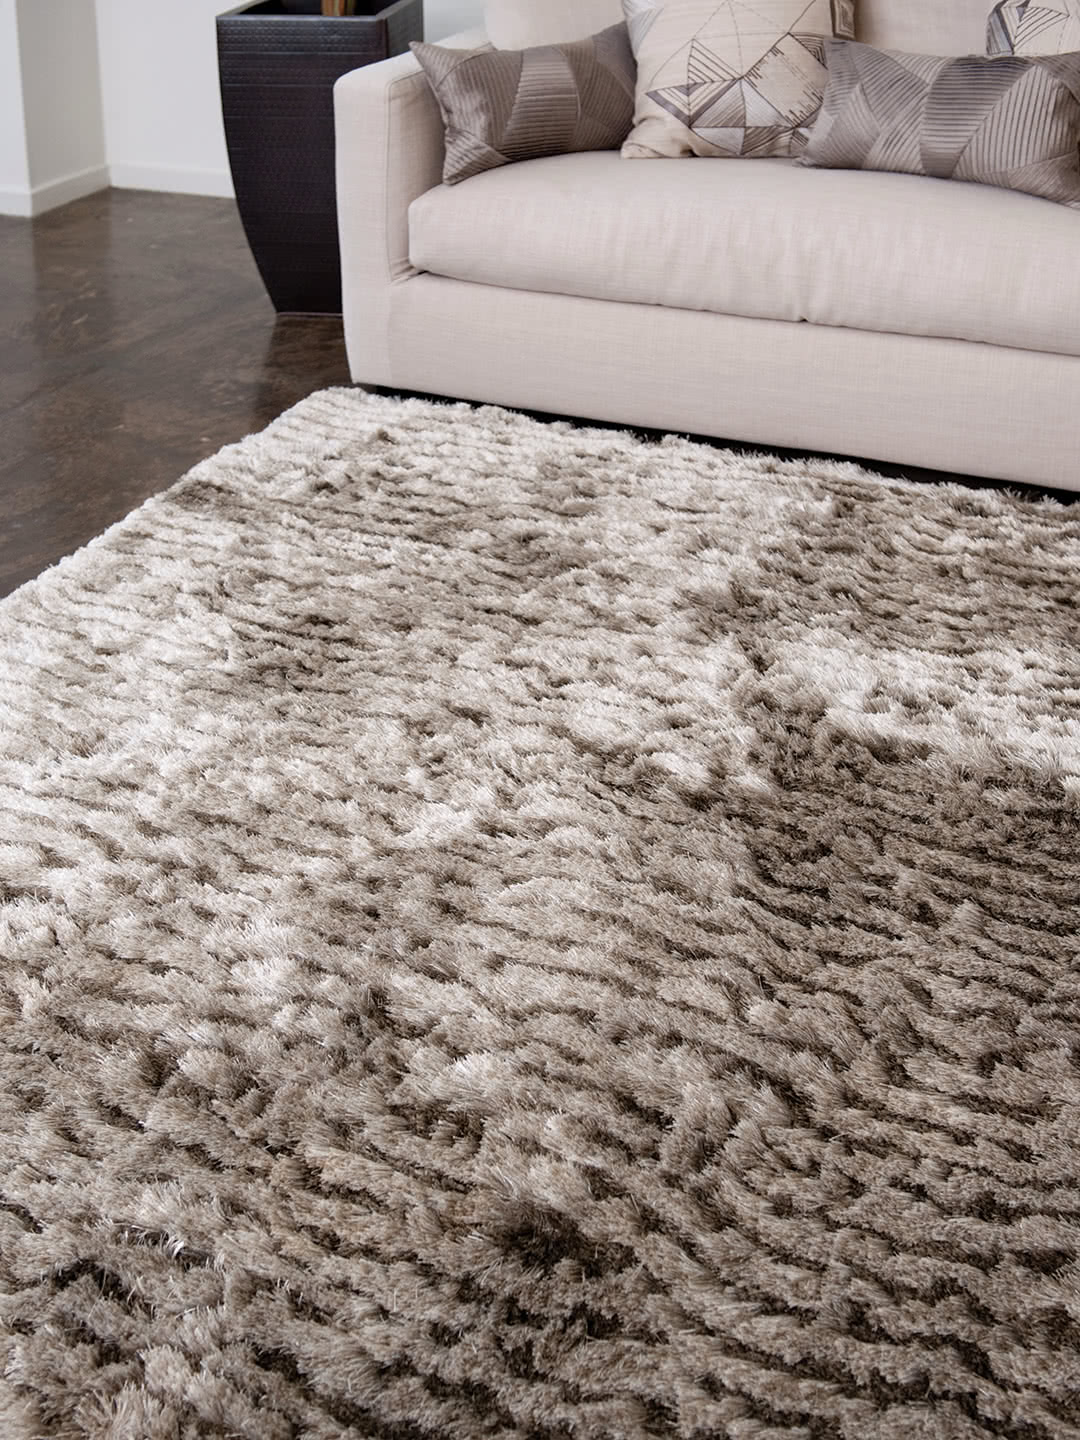 Highway-Beige wool rugs Perth